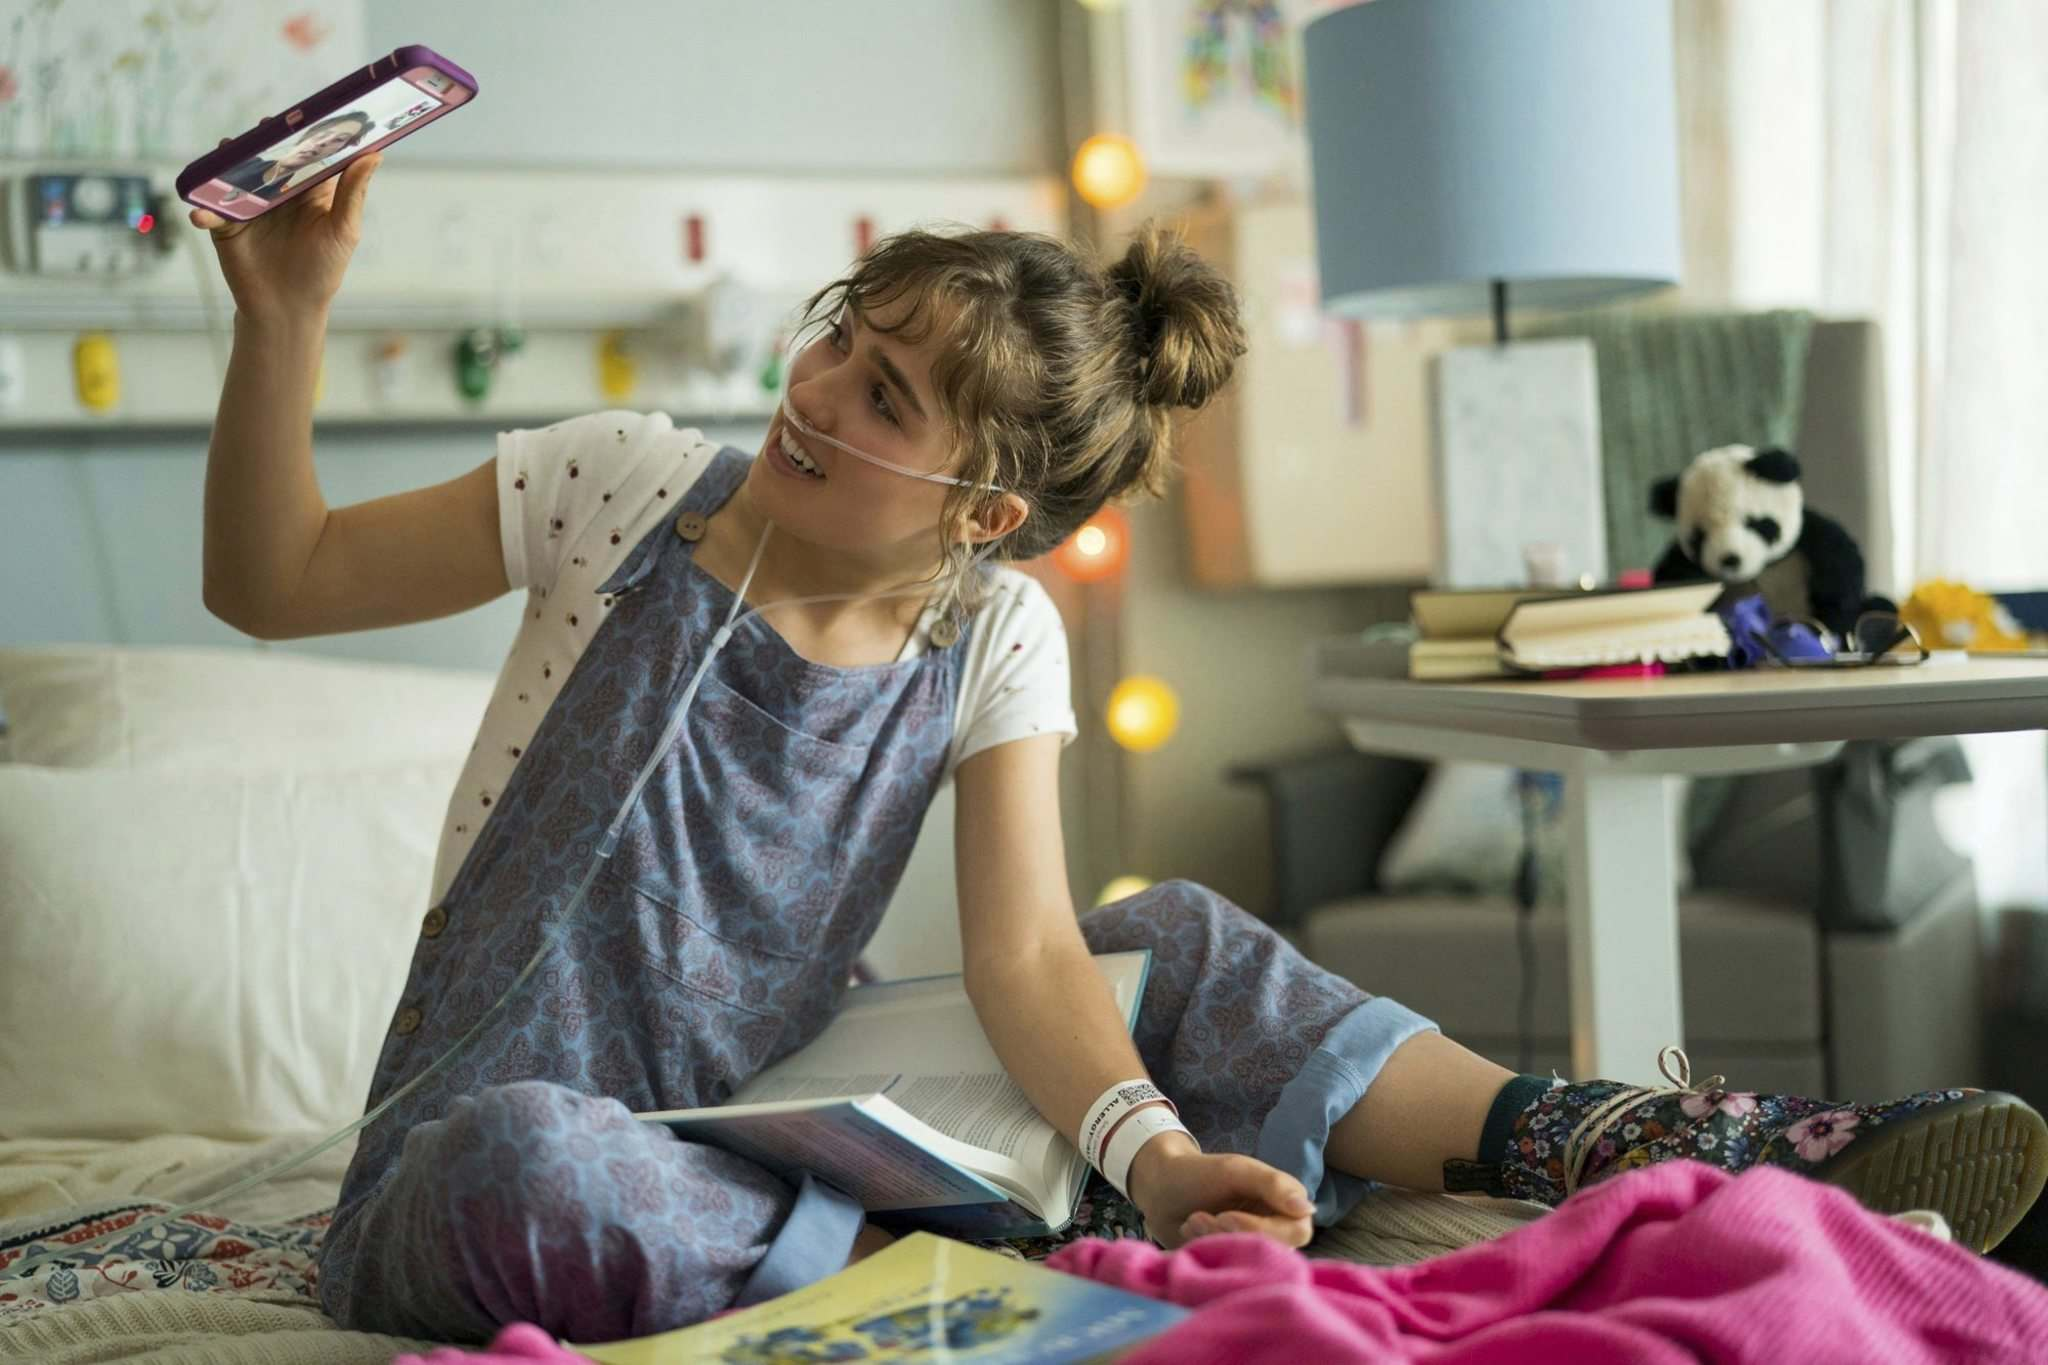 Haley Lu Richardson plays Stella, who has cystic fibrosis, which is dealt with in a realistic way. (Eone)